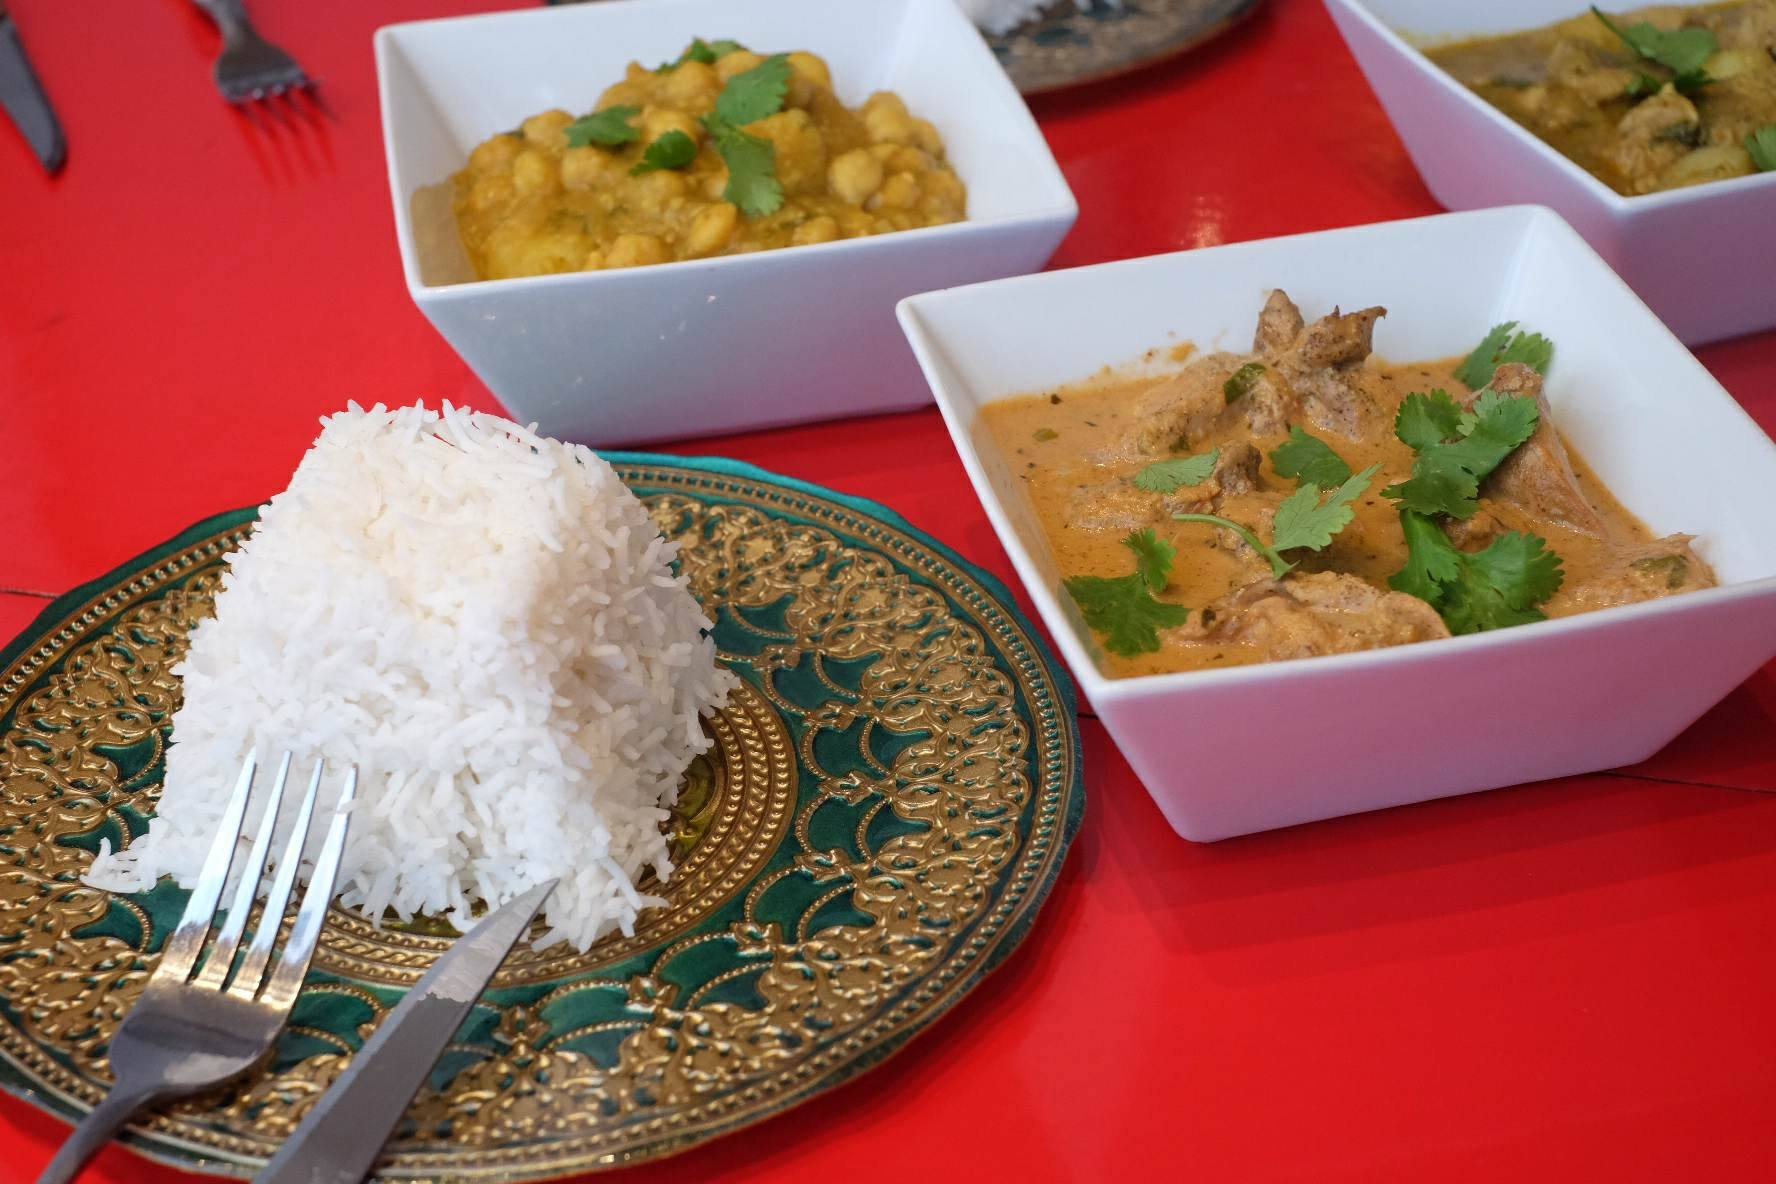 Chana (above) and Tomato coconut curry chicken (bottom right)